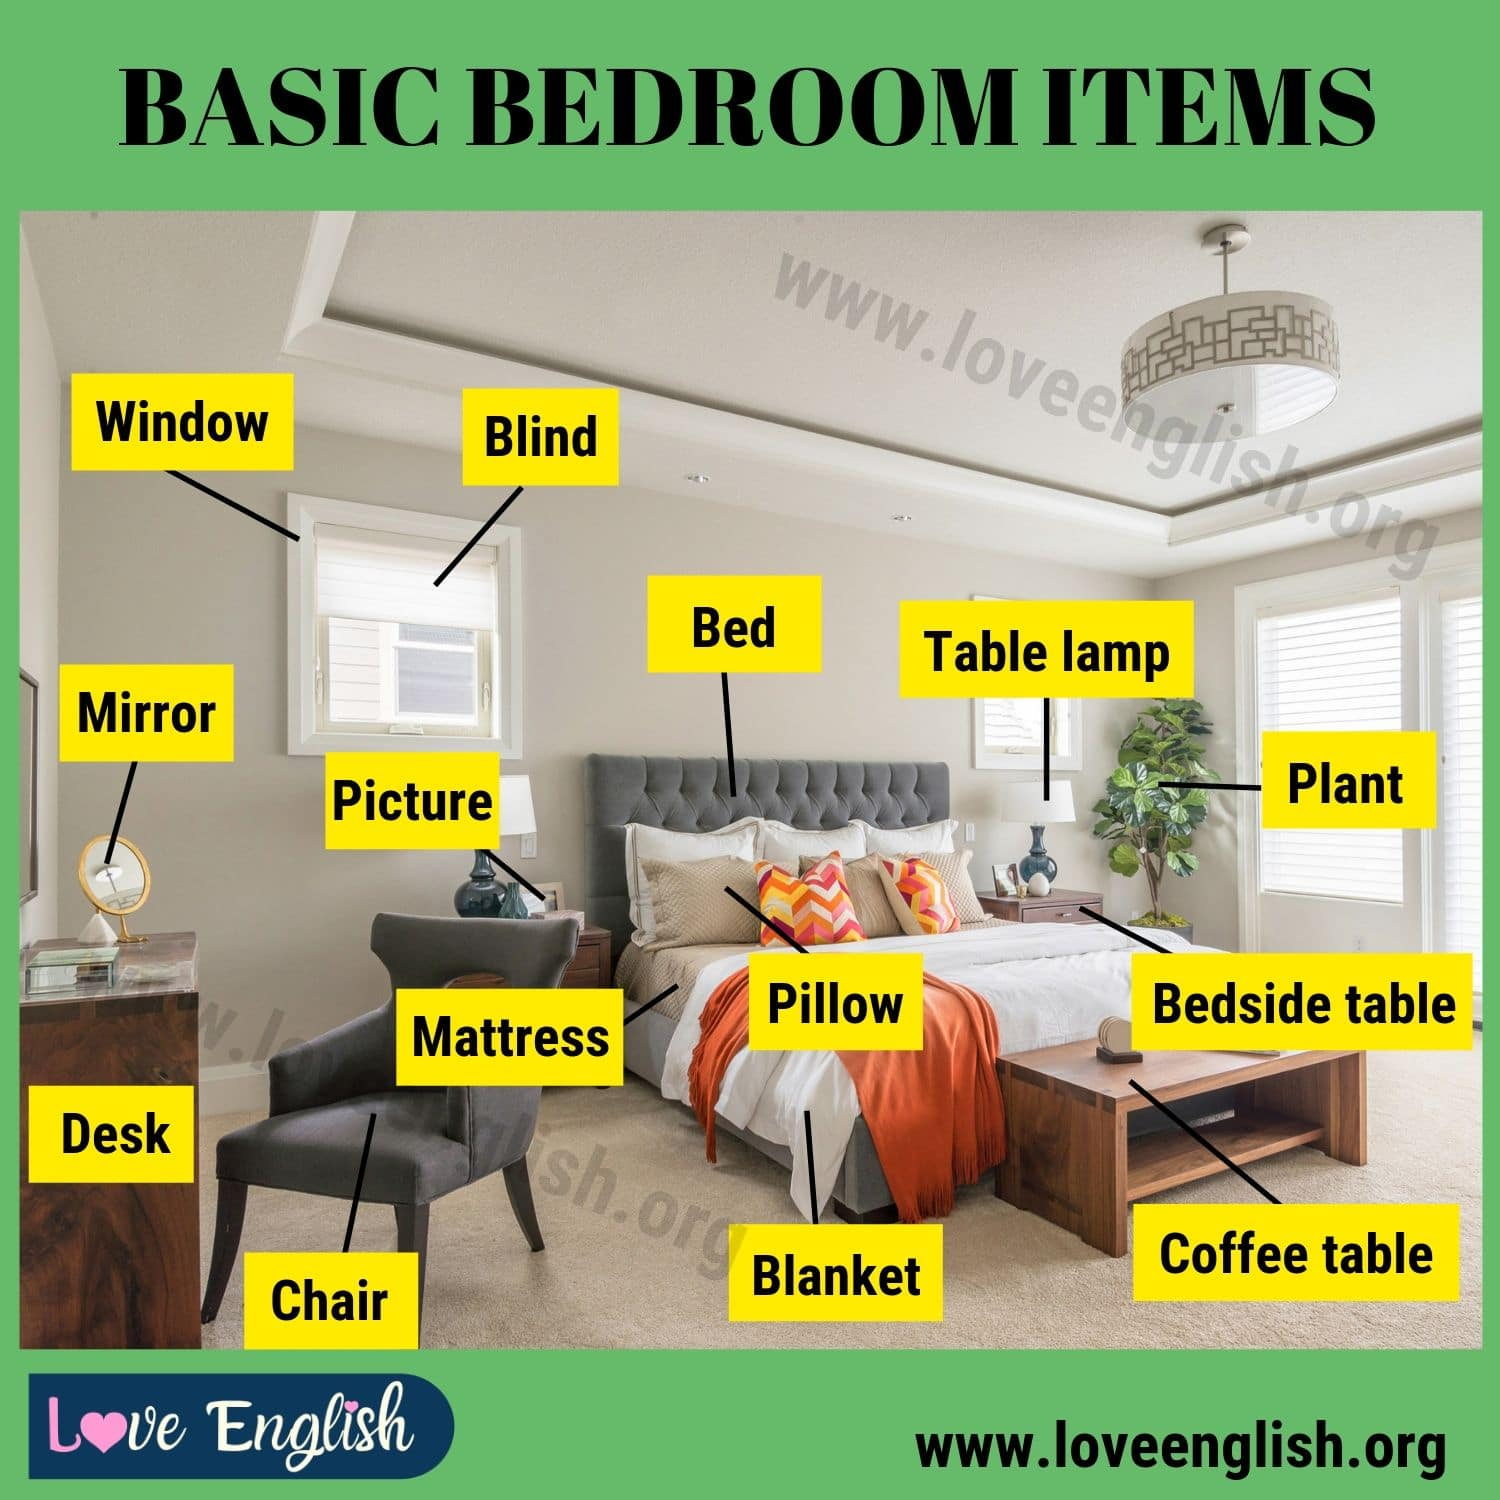 Bedroom Furniture: 6+ Basic Items You Need for Your Bedroom